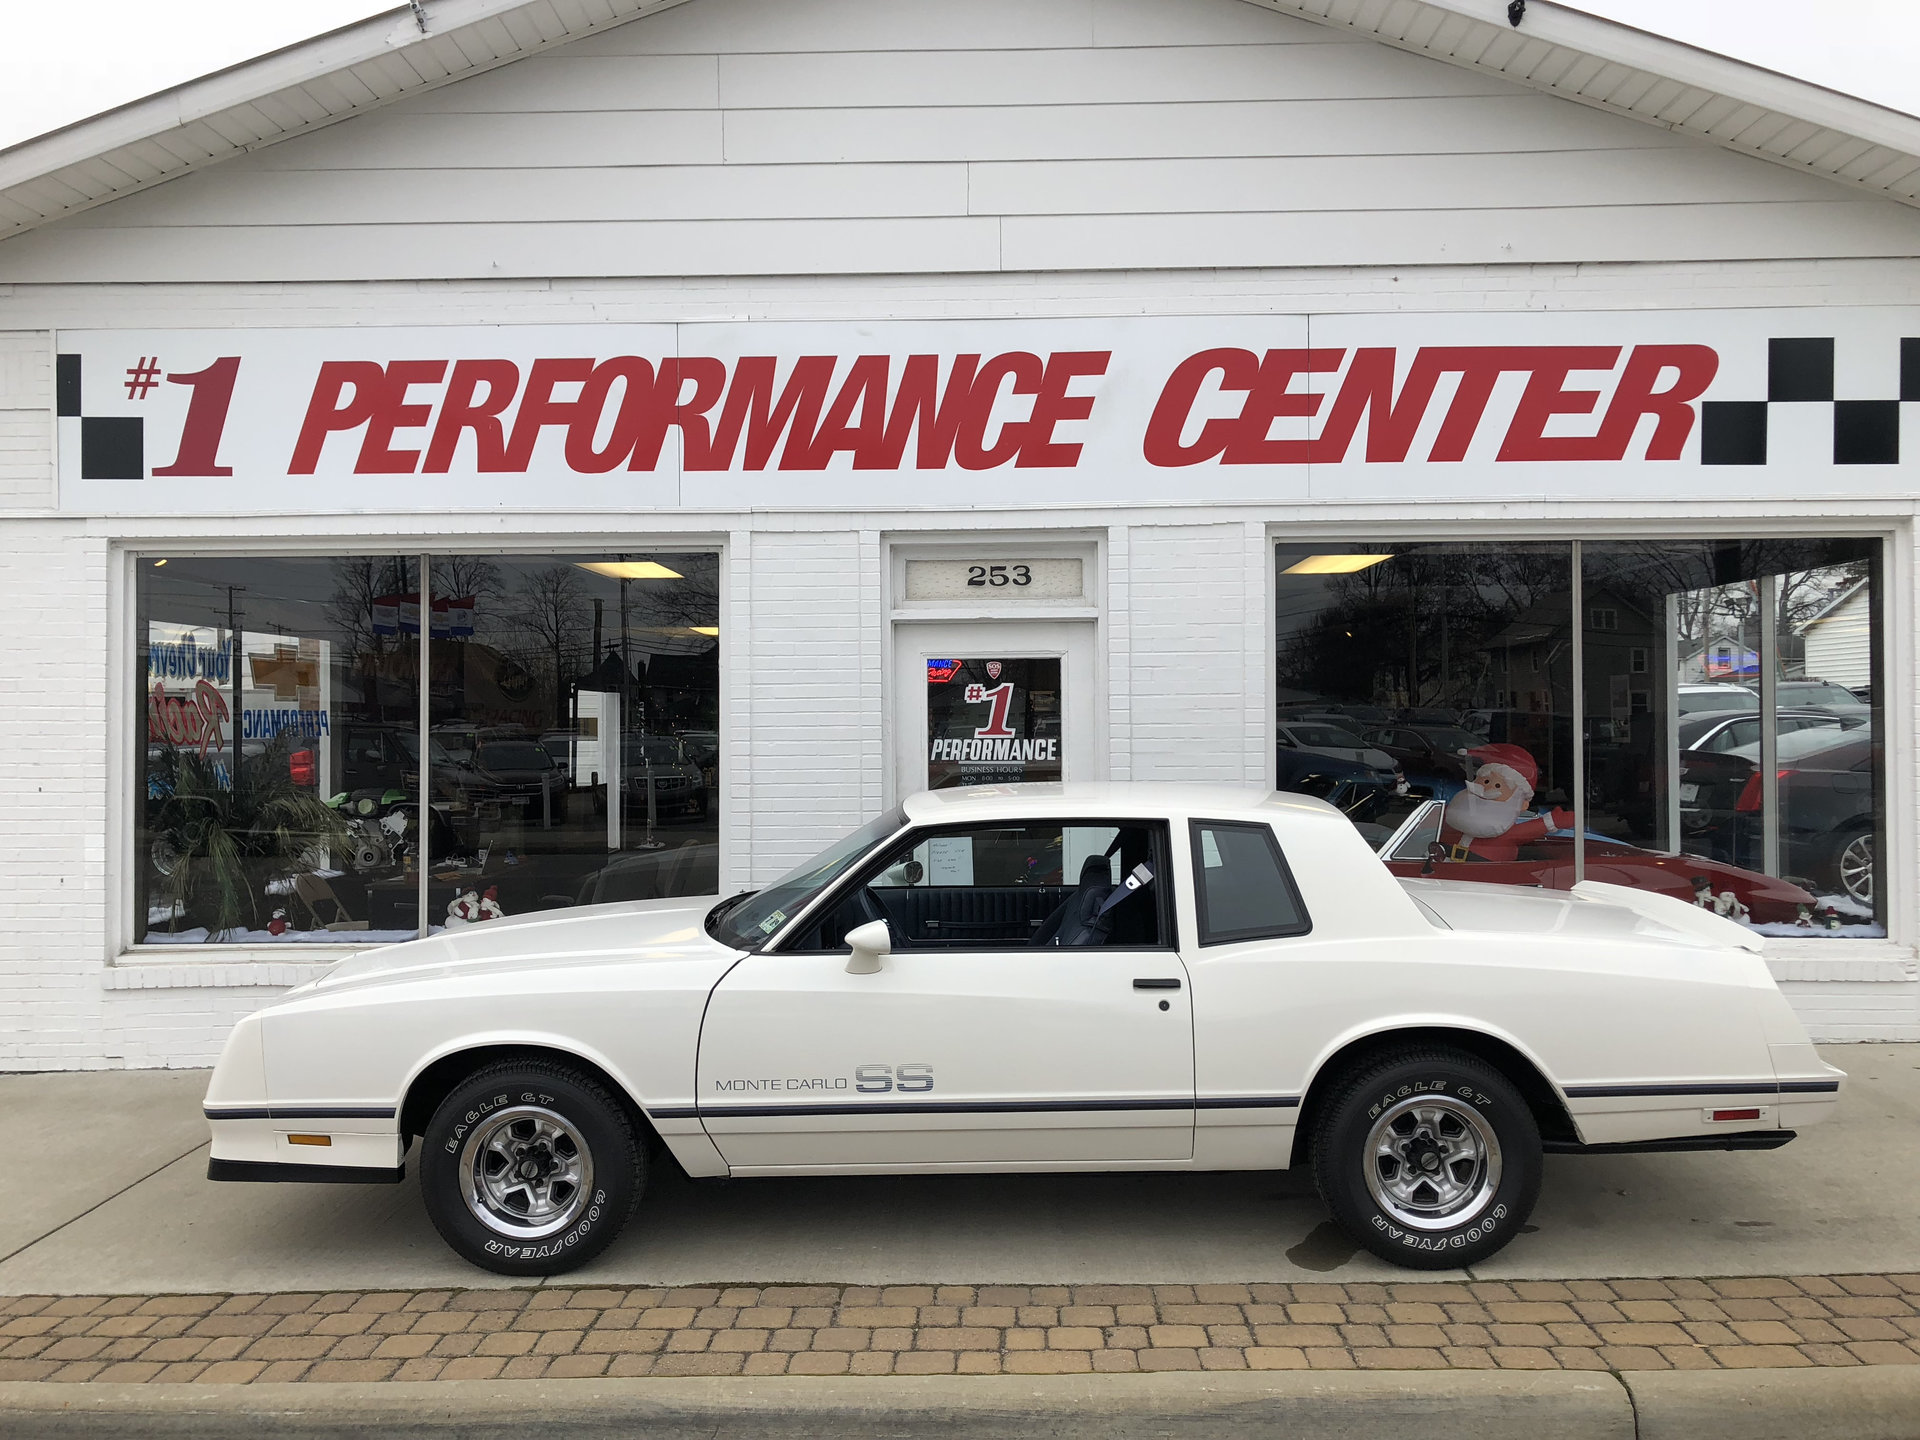 156566367583_hd_1984-chevrolet-monte-carlo Take A Look About 1980 Monte Carlo for Sale with Mesmerizing Photos Cars Review